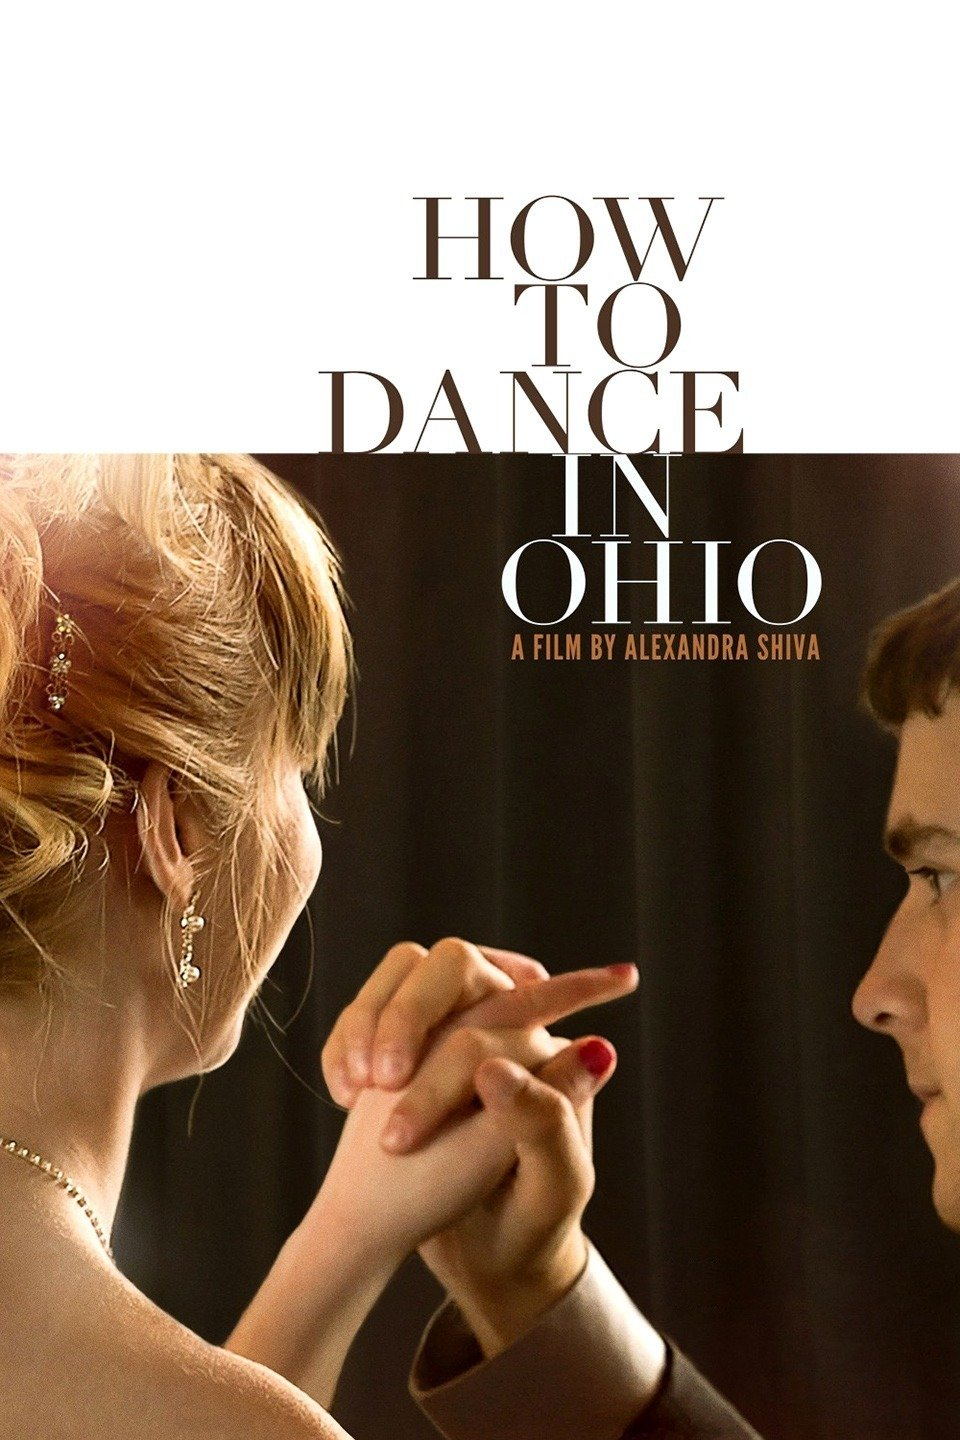 Poster for How to Dance in Ohio